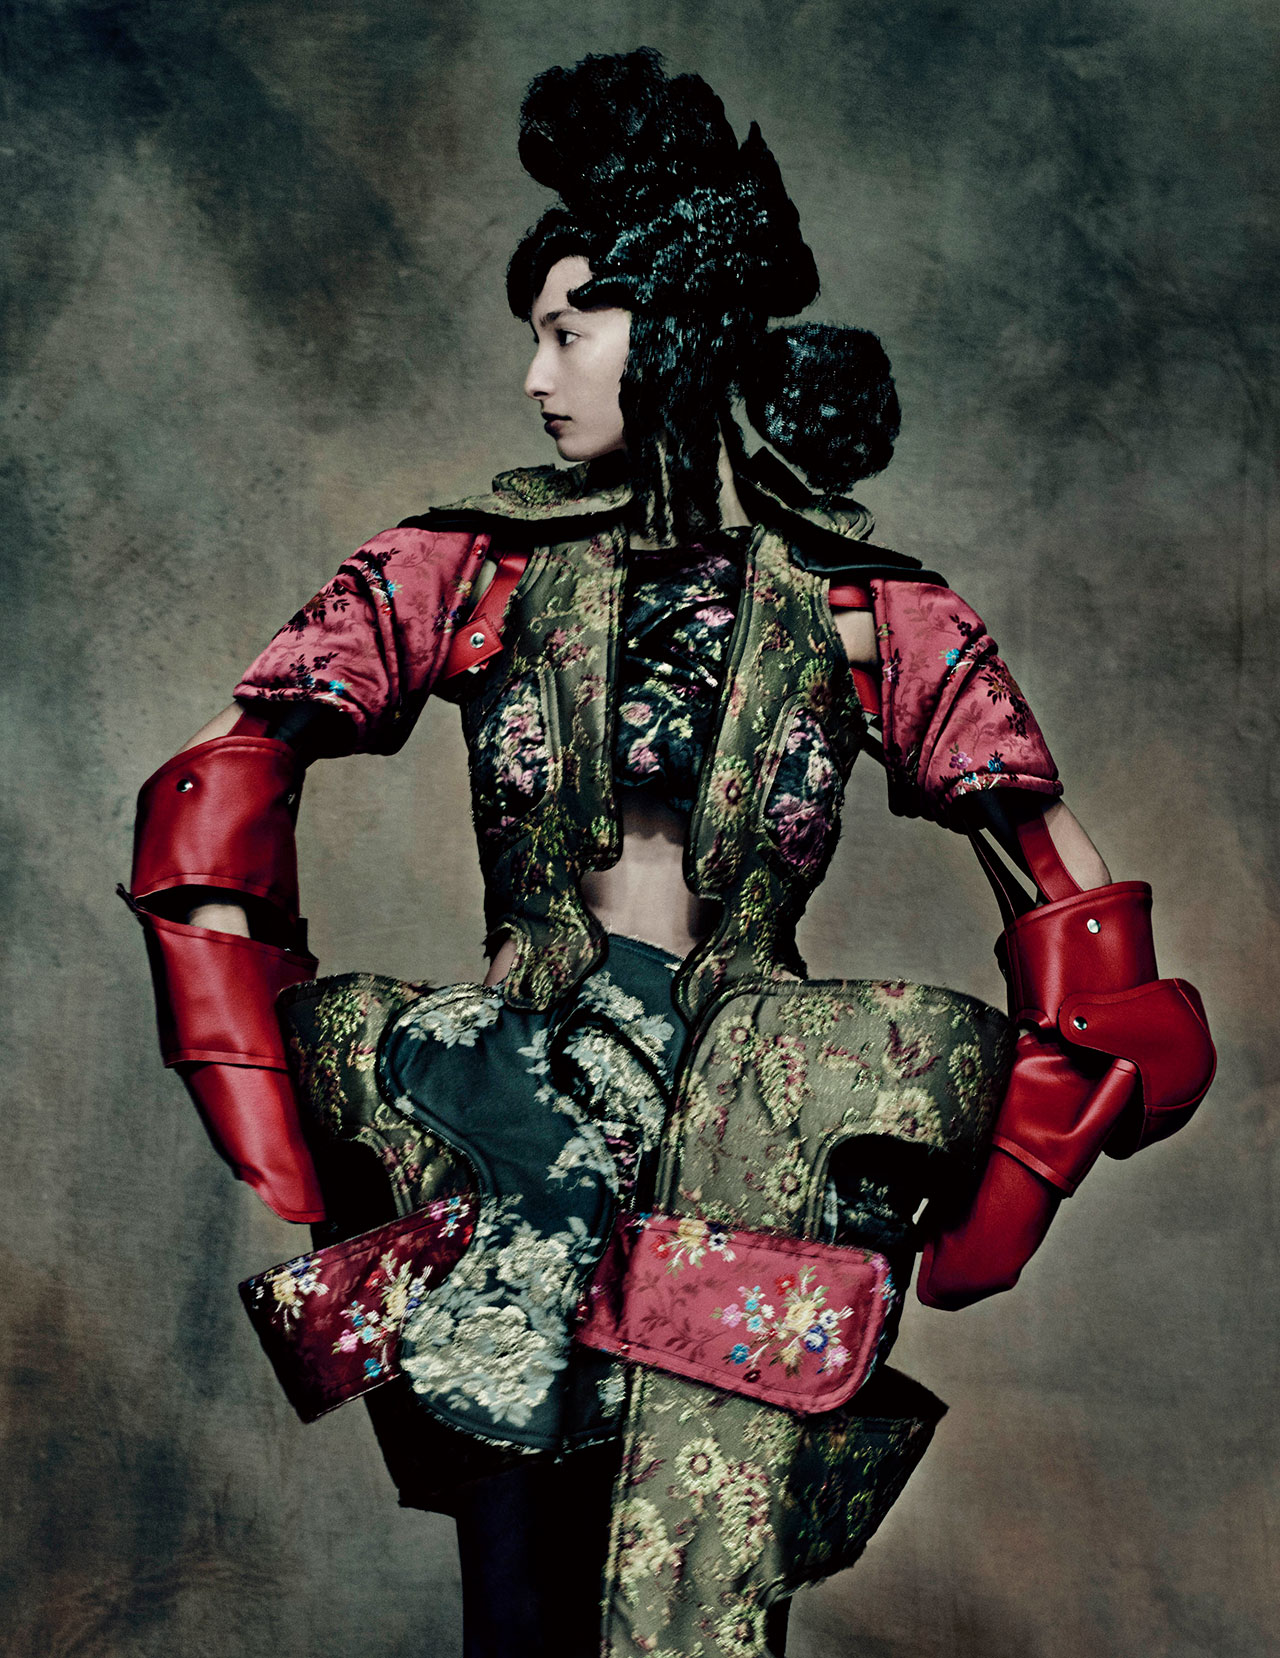 Rei Kawakubo (Japanese, born 1942) for Comme des Garçons (Japanese, founded 1969), 18th Century Punk, autumn/winter 2016–17; Courtesy of Comme des Garçons. Photograph by © Paolo Roversi; Courtesy of The Metropolitan Museum of Art